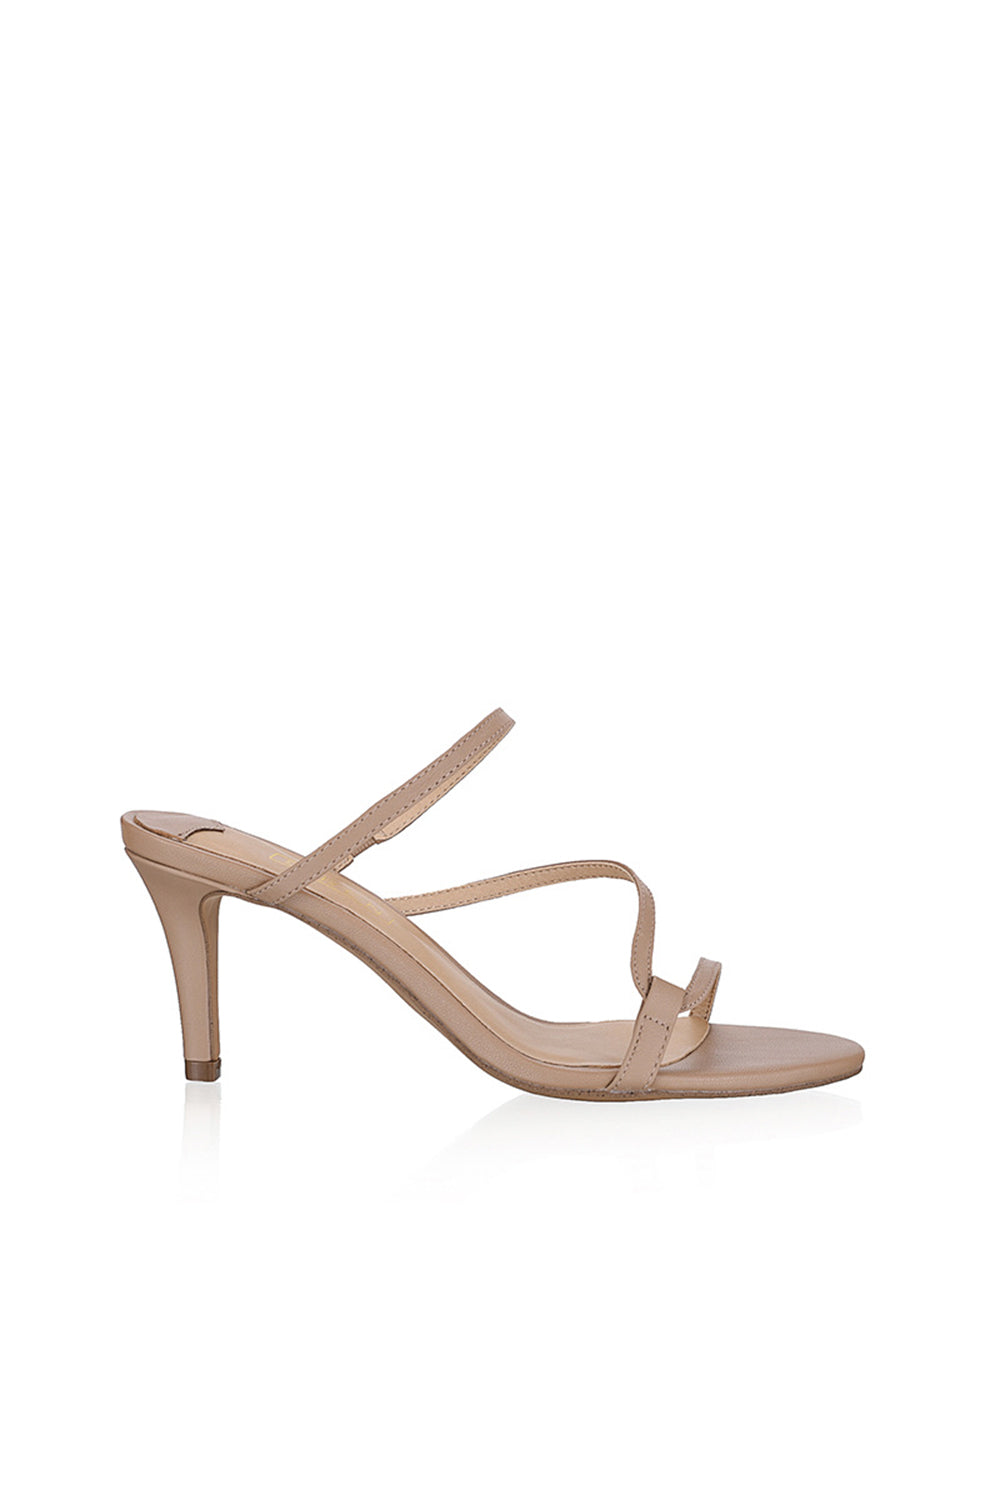 Dot Heel Nude Leather by Siren